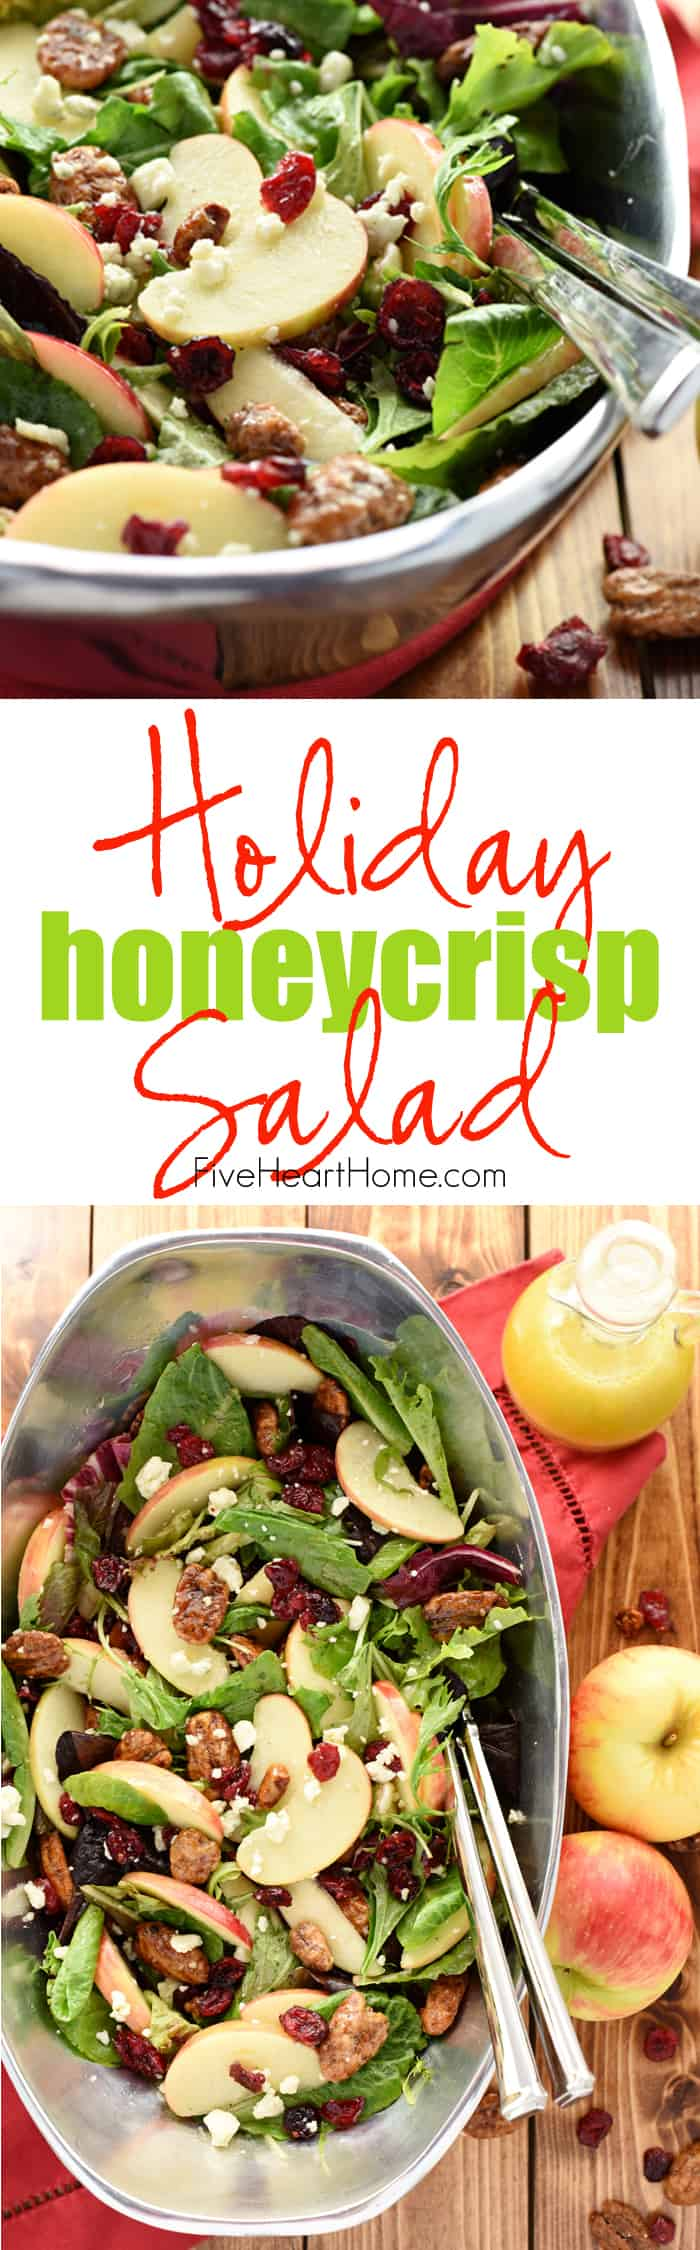 Holiday Honeycrisp Salad ~ full of flavor and texture, this gorgeous salad is loaded with fresh apple slices, crunchy toasted pecans, chewy dried cranberries, and zippy blue cheese, all dressed with a tangy-sweet apple cider vinaigrette atop a bed of your favorite salad greens...so vibrant and tasty you'll want to make it an annual addition to your Thanksgiving, Christmas, or New Year's menu! | FiveHeartHome.com via @fivehearthome